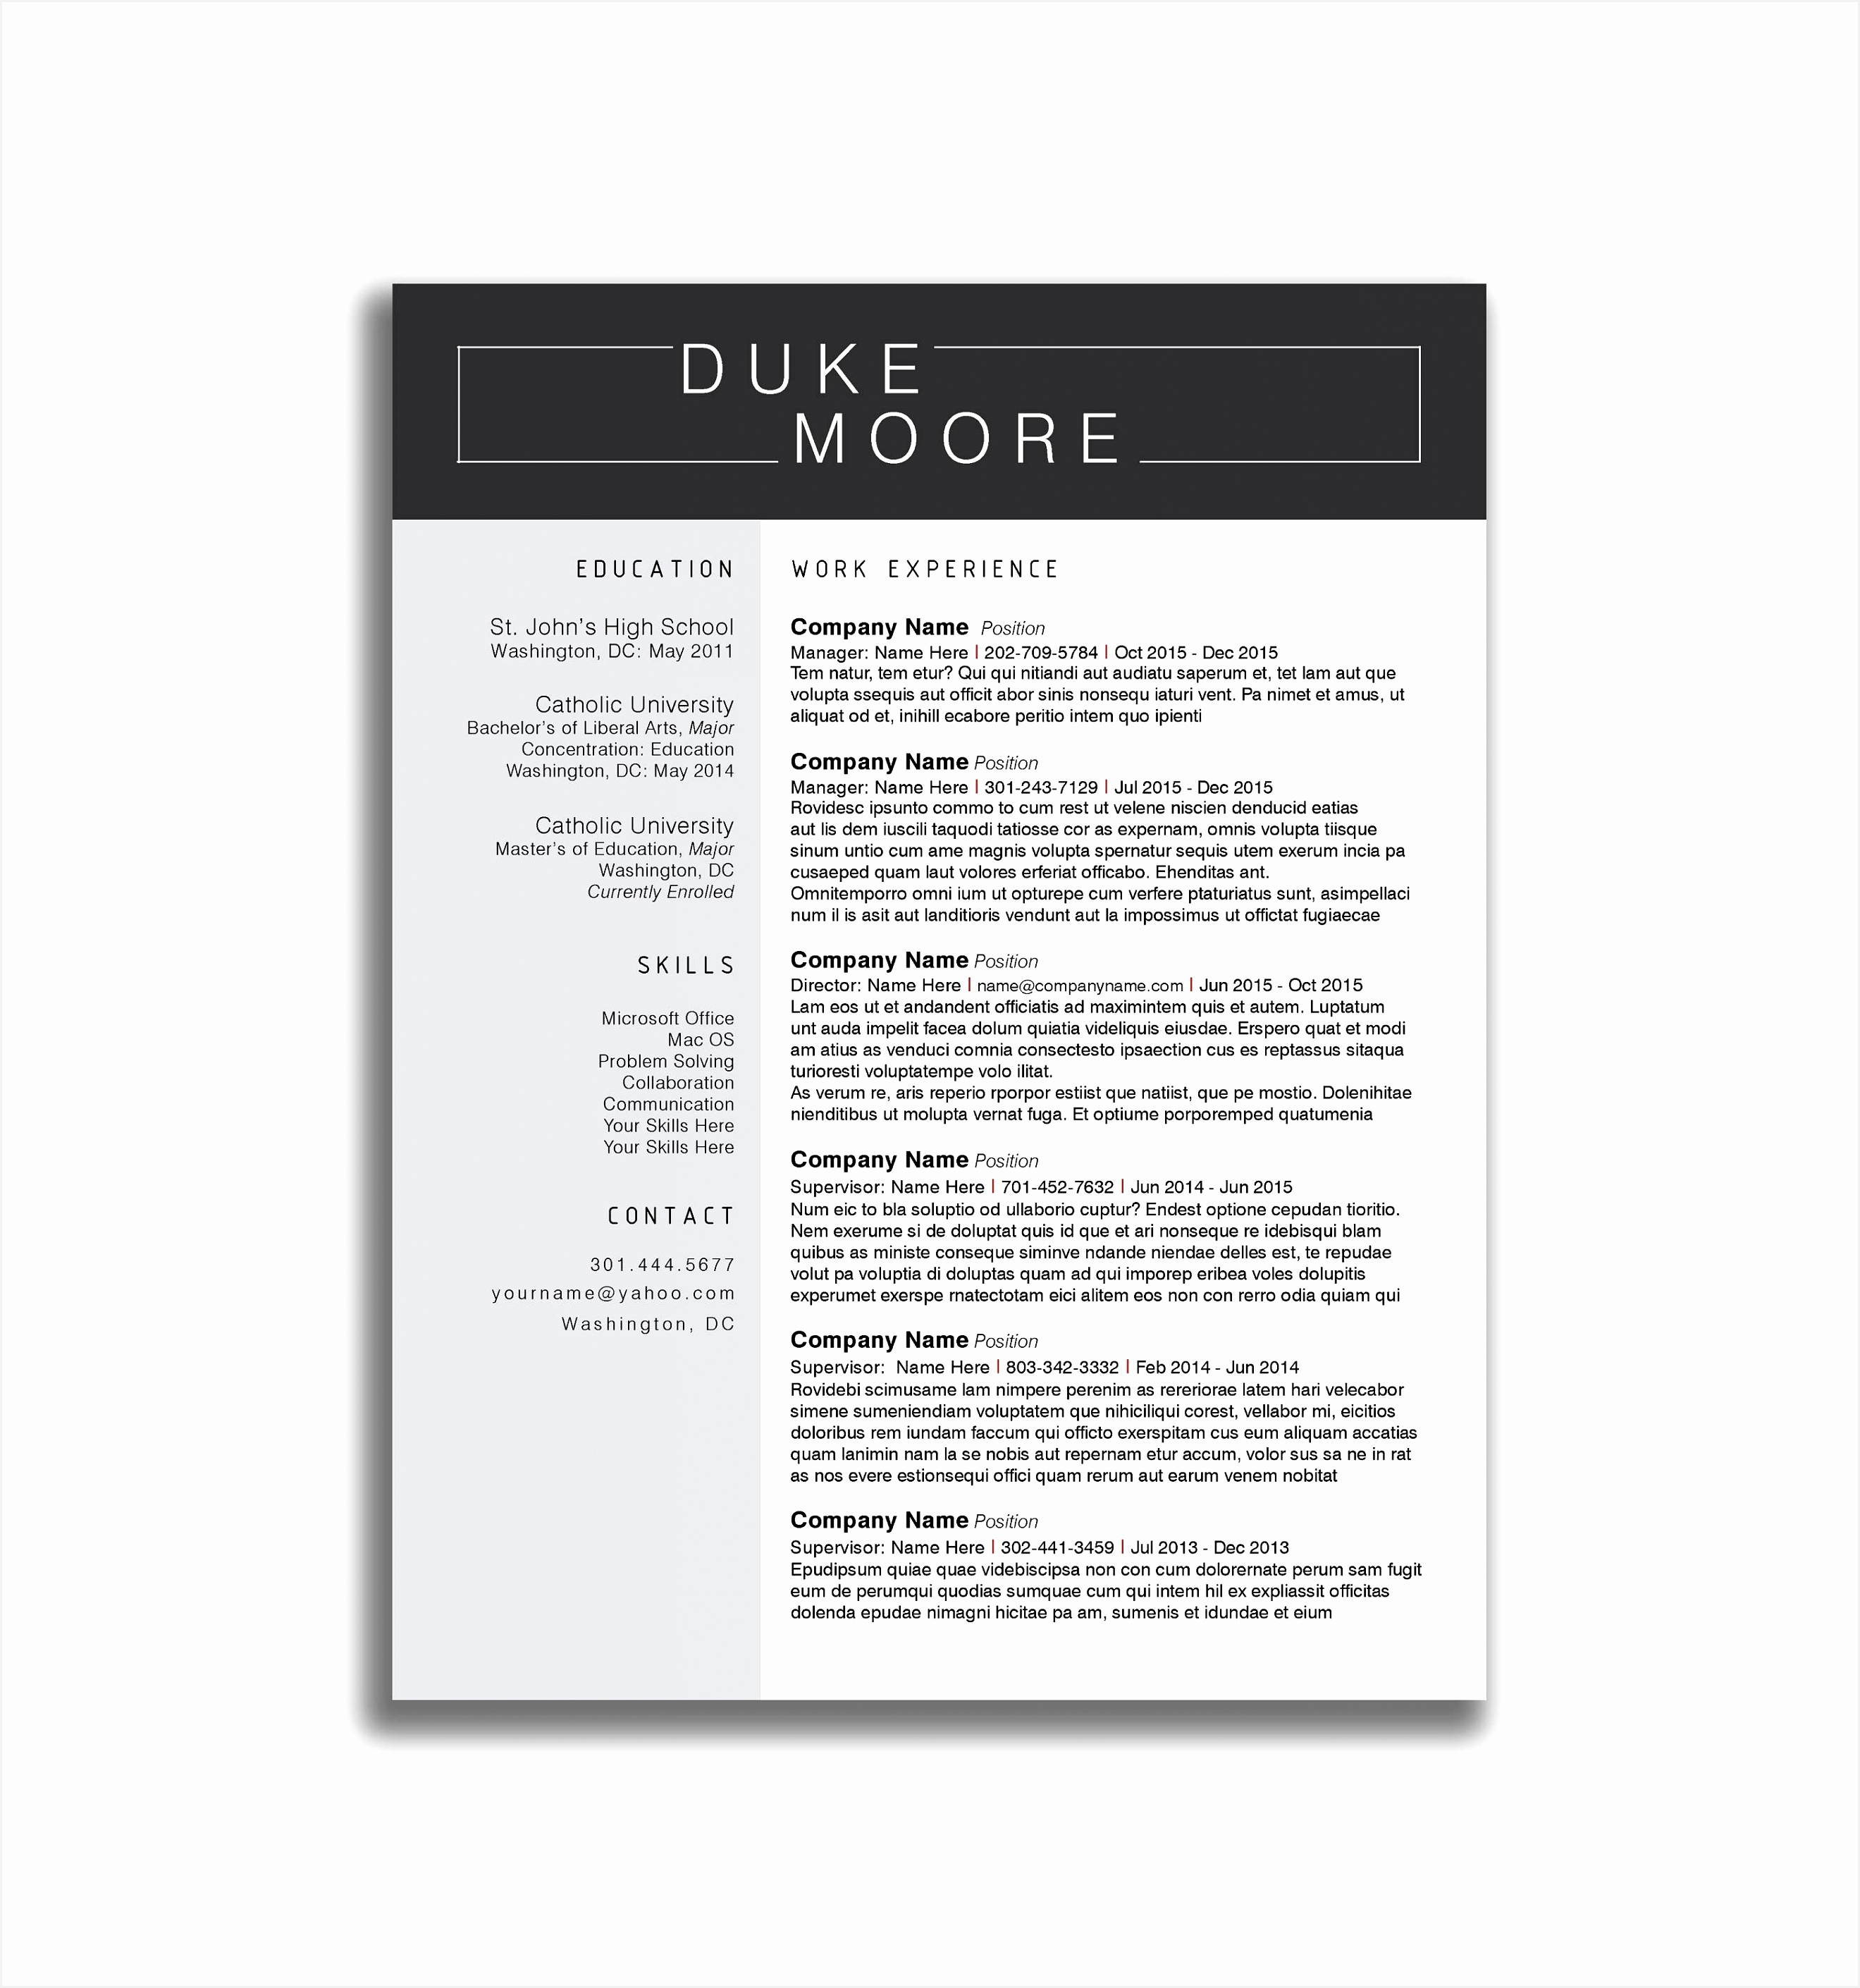 Microsoft Word Resume Template017 I6rky Elegant 017 Invoice Template Google Docs Spreadsheet Uk Contractor Does Have Of Microsoft Word Resume Template017 Dtagp Fresh Breast Cancer Brochure Template Collection Free Brochures New